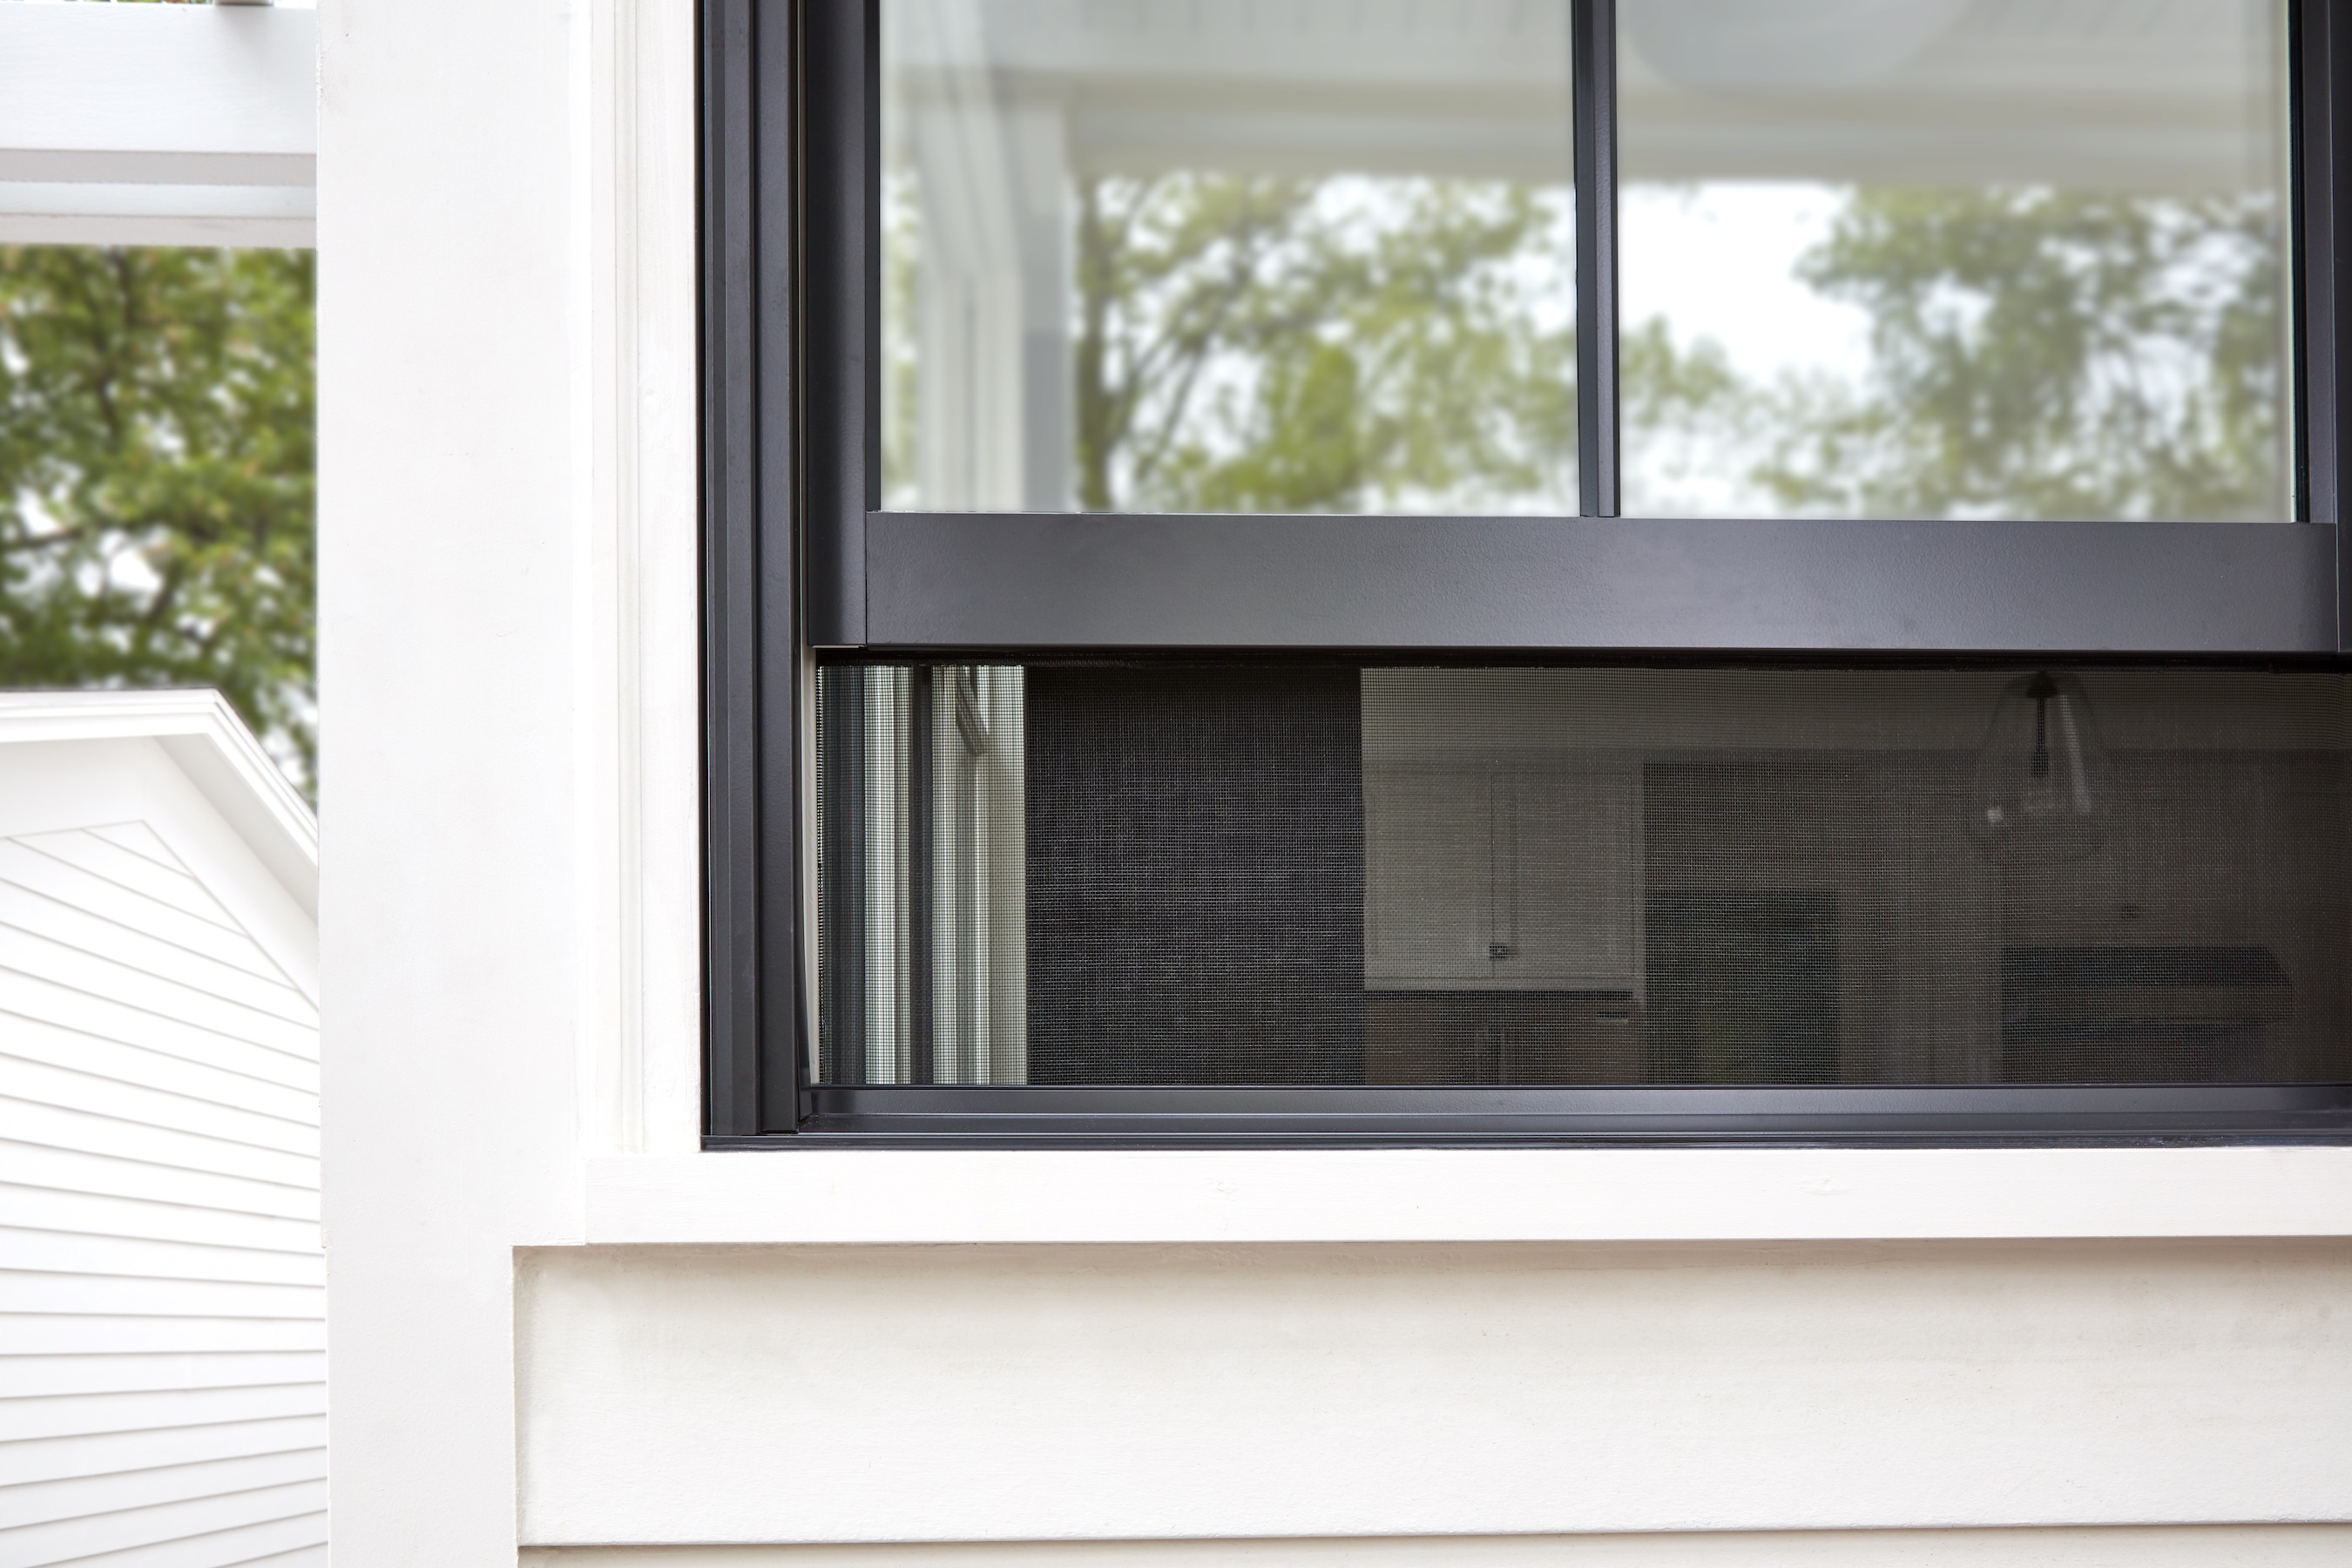 Pella debuts integrated rolscreen at aia 2018 conference for Pella casement window screens